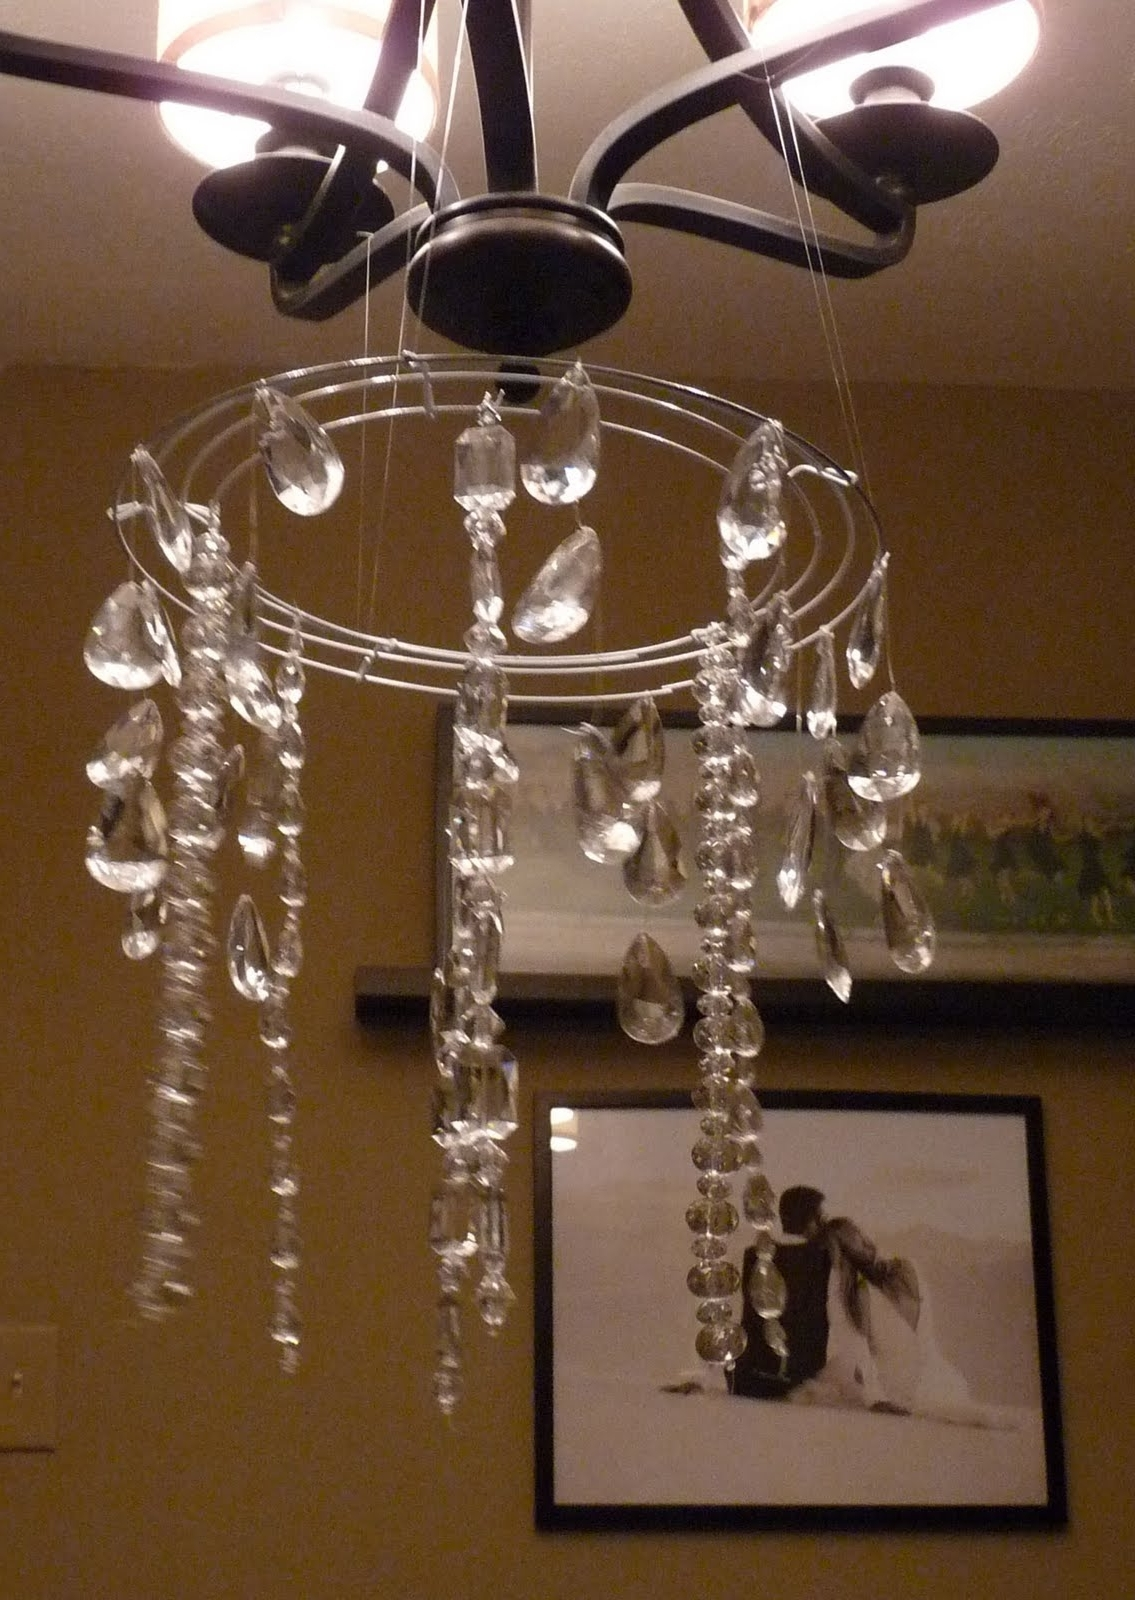 Faux Crystal Chandeliers Intended For Recent The Happy Homebodies: Tutorial: Diy Faux Crystal Chandelier (View 4 of 15)